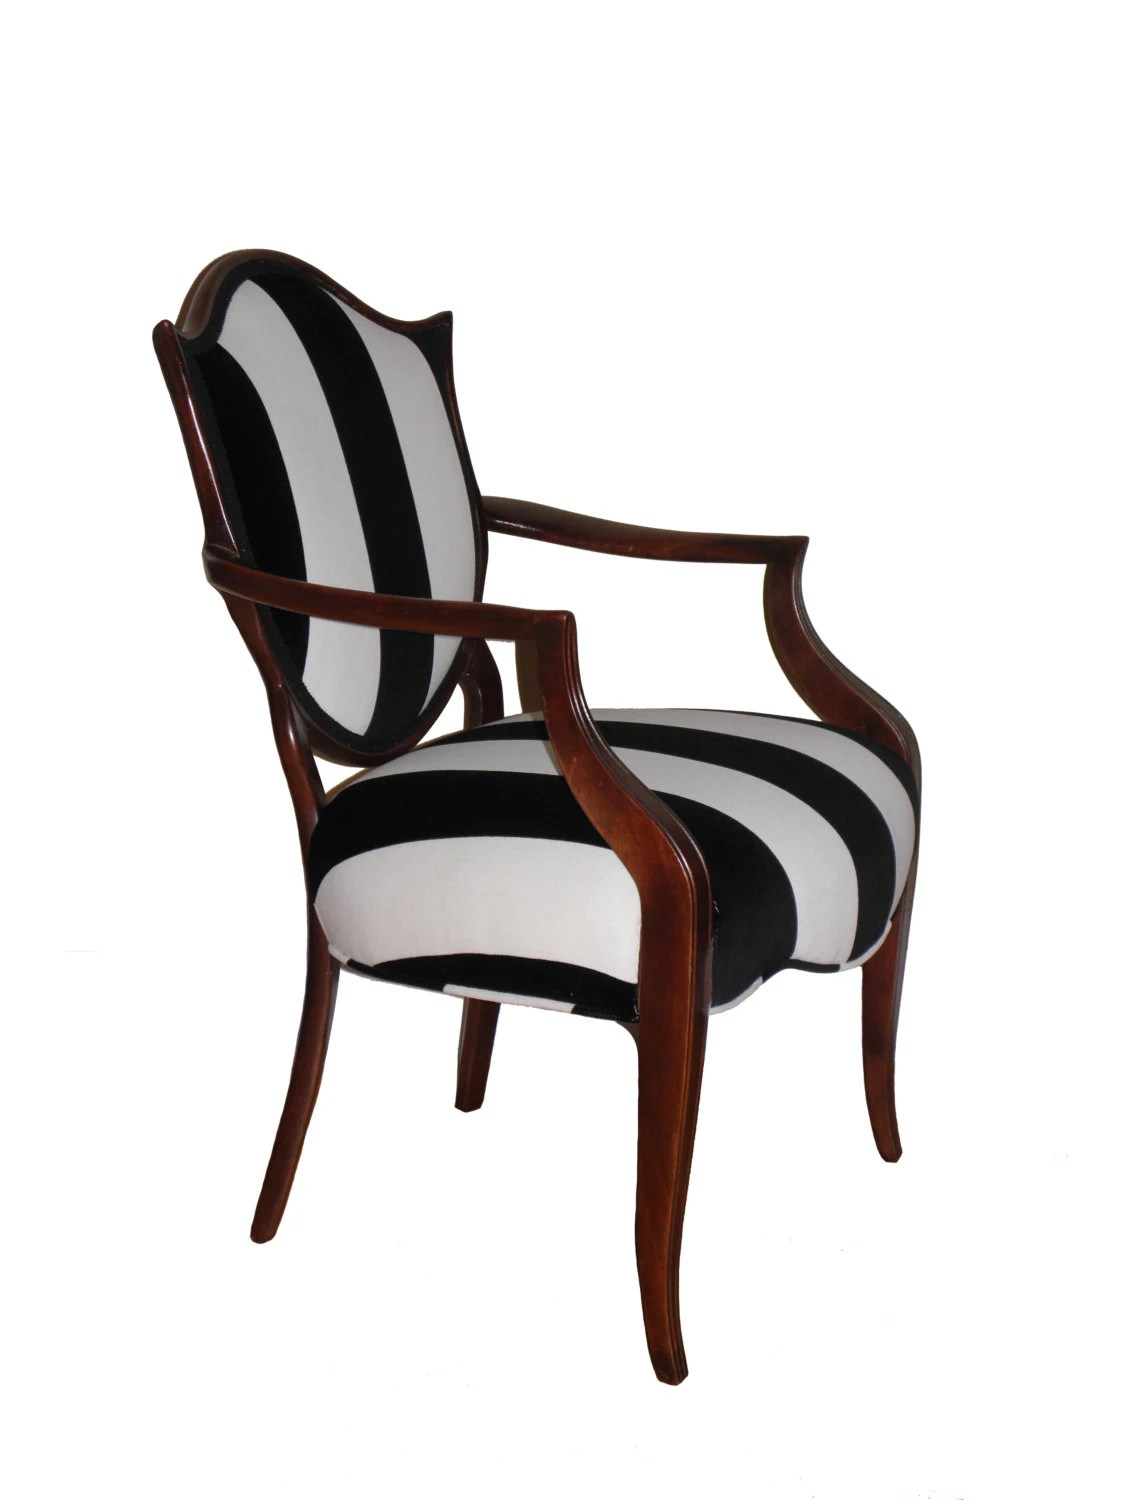 Blue And White Striped Chair Shield Back Black And White Striped Upholstered Arm Chair